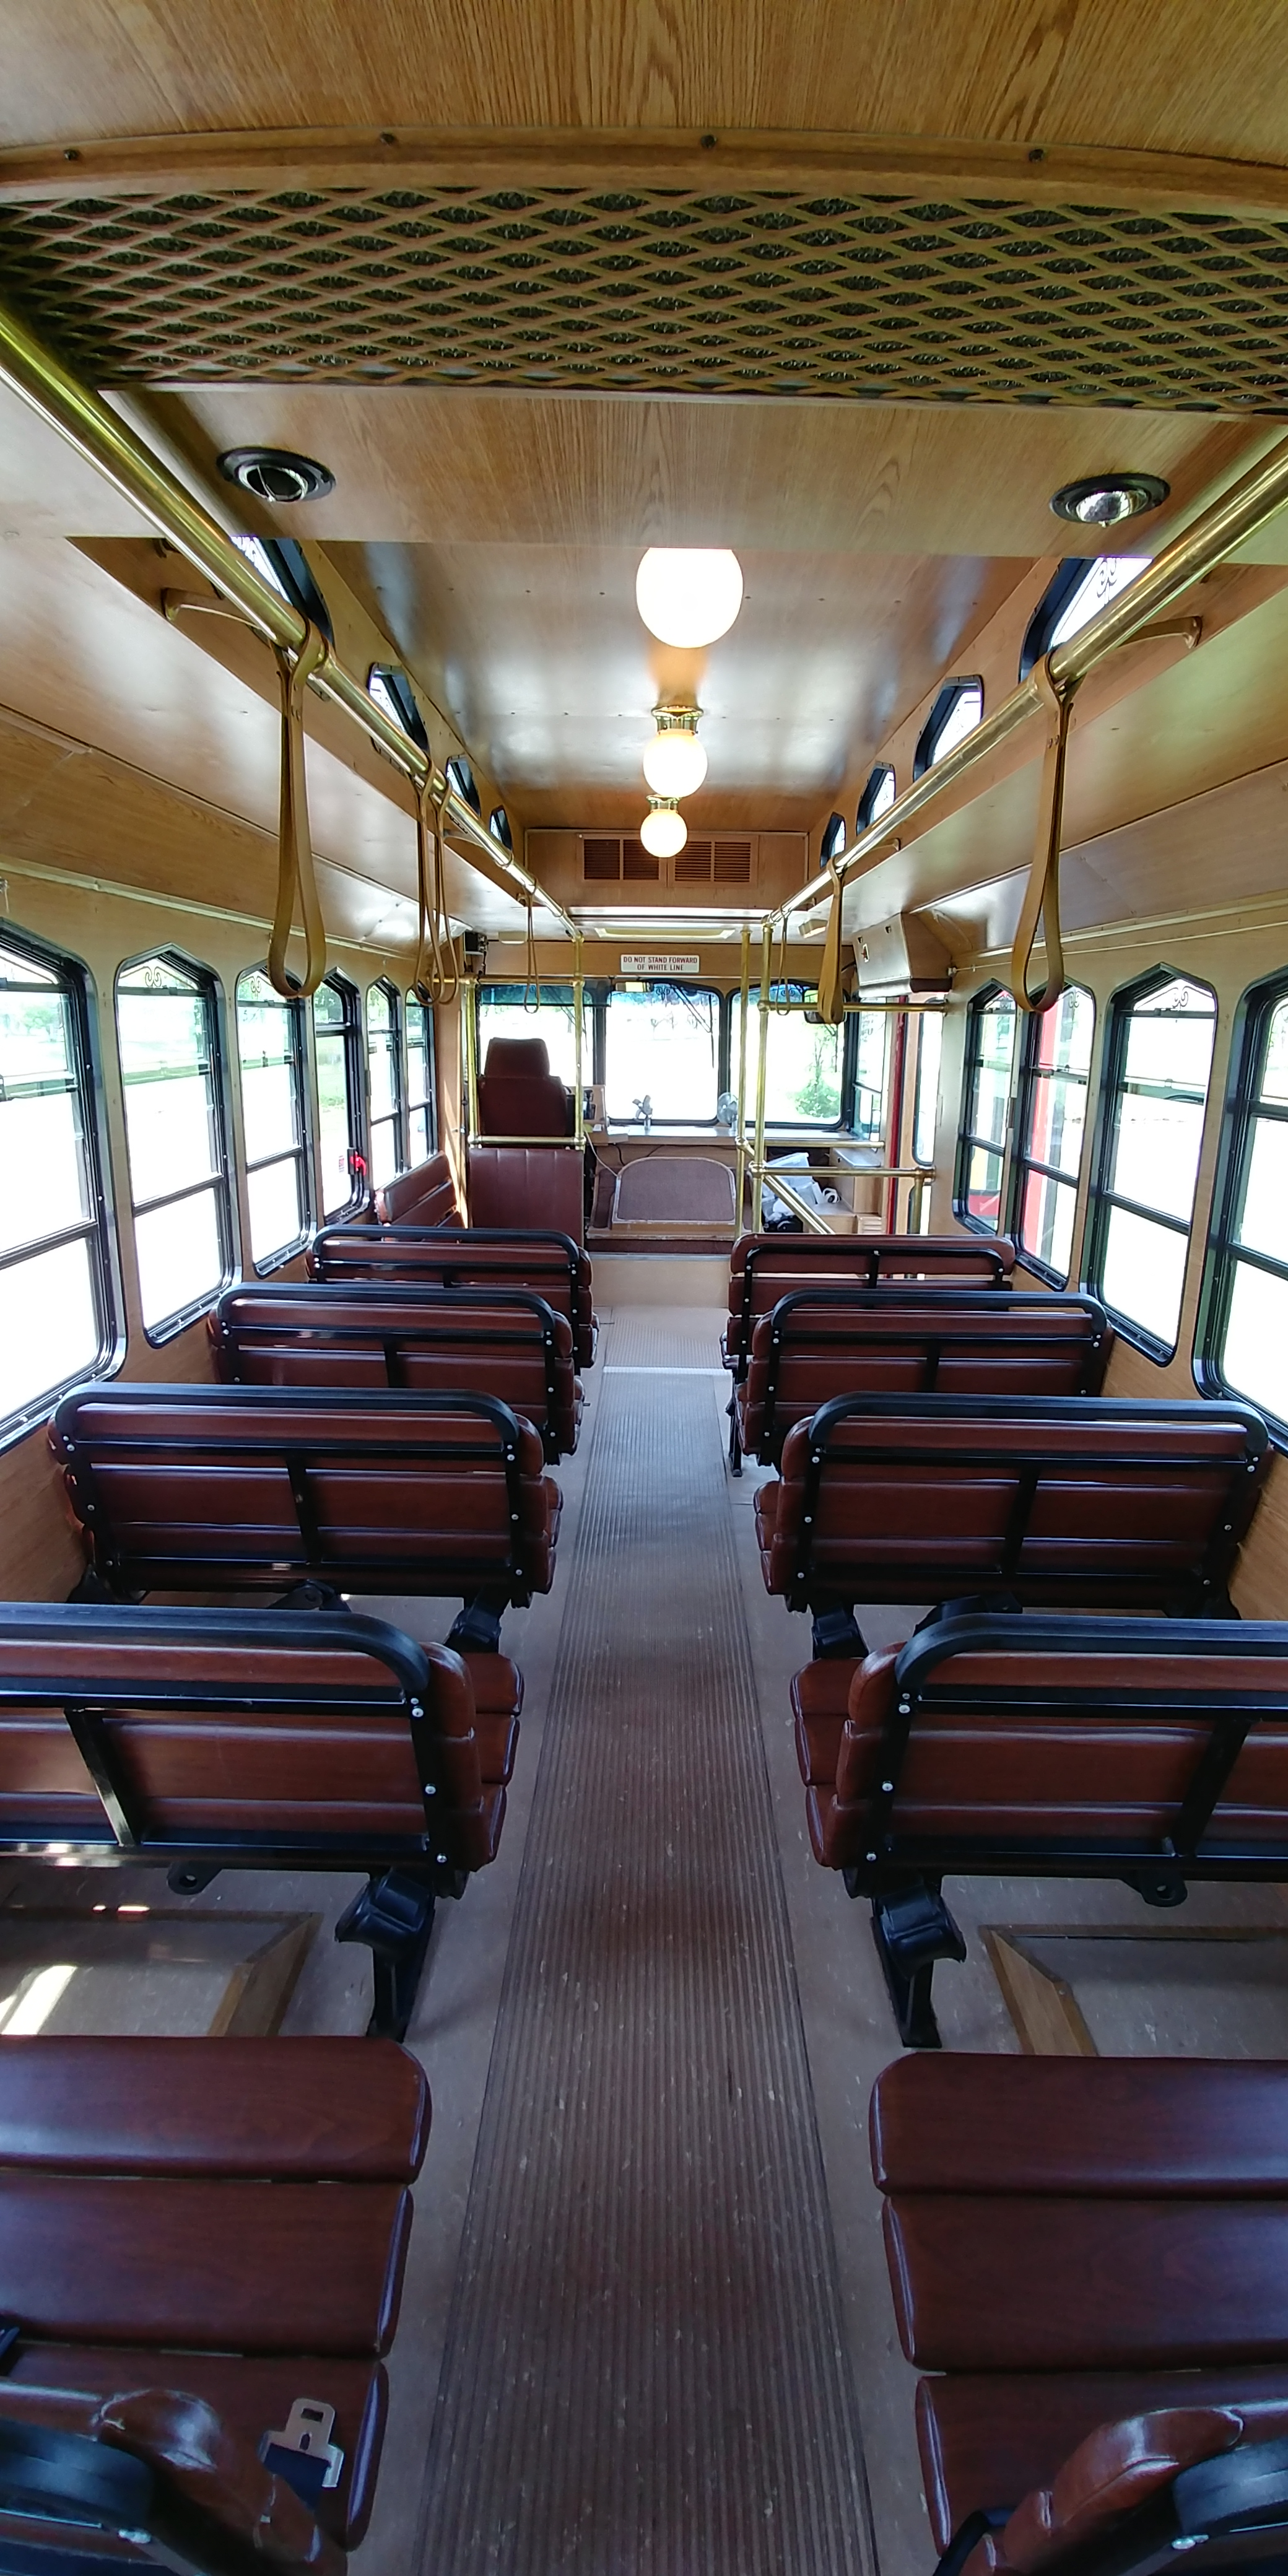 27 Passenger Trolley Interior 4